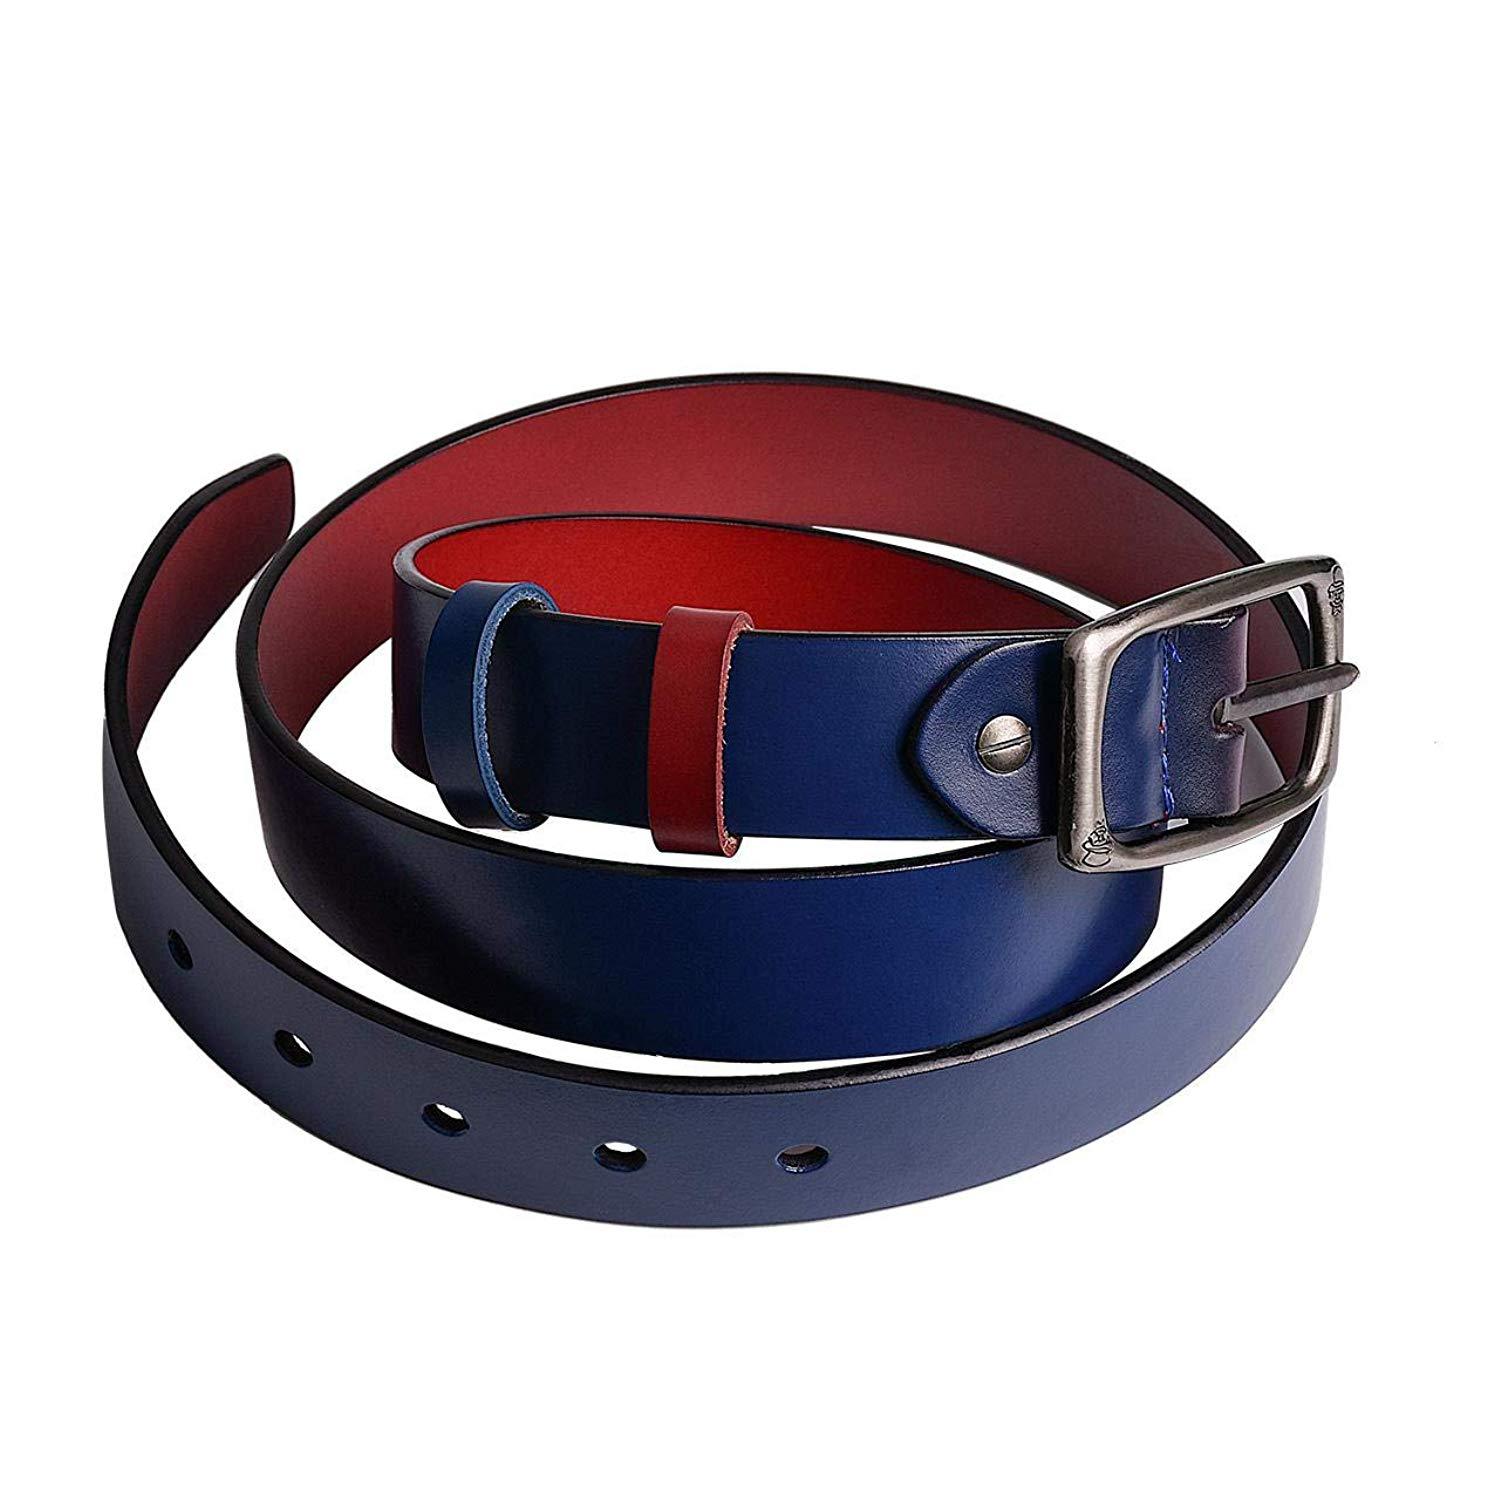 d006989c87 Get Quotations · Reversible Women Western Leather Belt for Jeans Pants  Dress Ladies leather 28mm Belt for Girls with